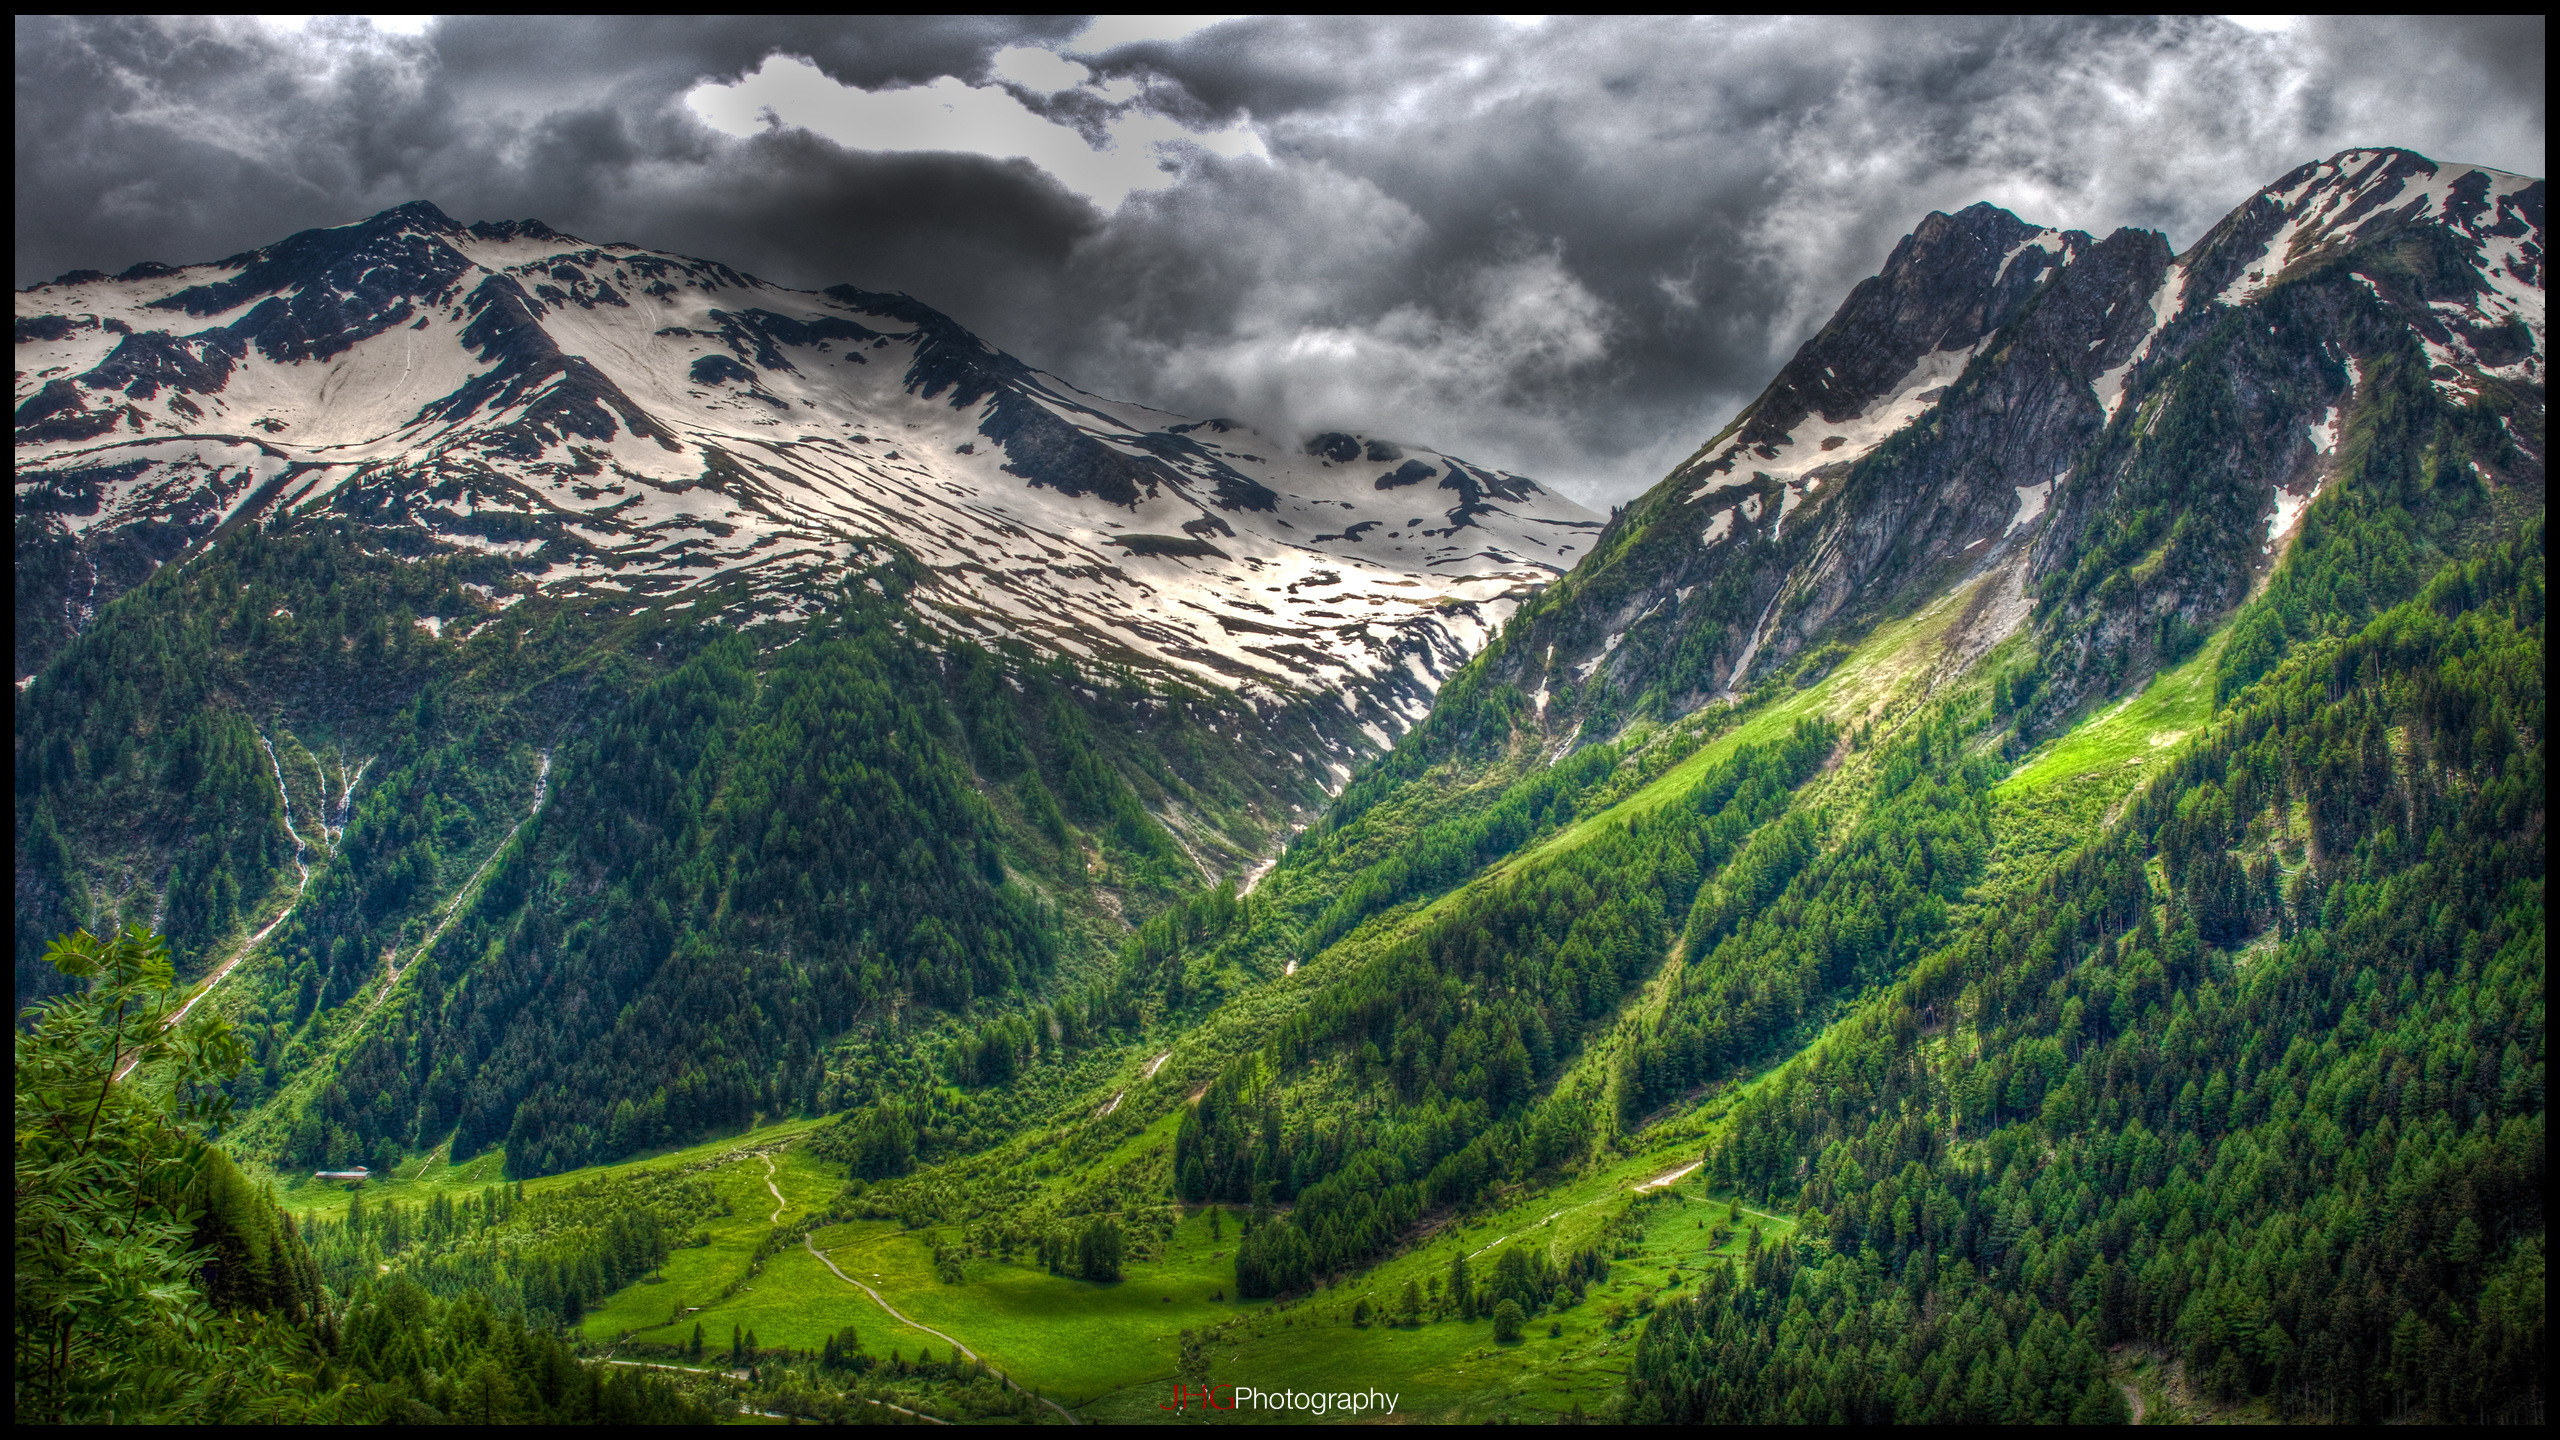 2560x1440 JHG Photo from Switzerland - JHG Photography - Photographe en Suisse. swiss  photo. wallpapers. landscape. portraits. HDR. Switzerland. World